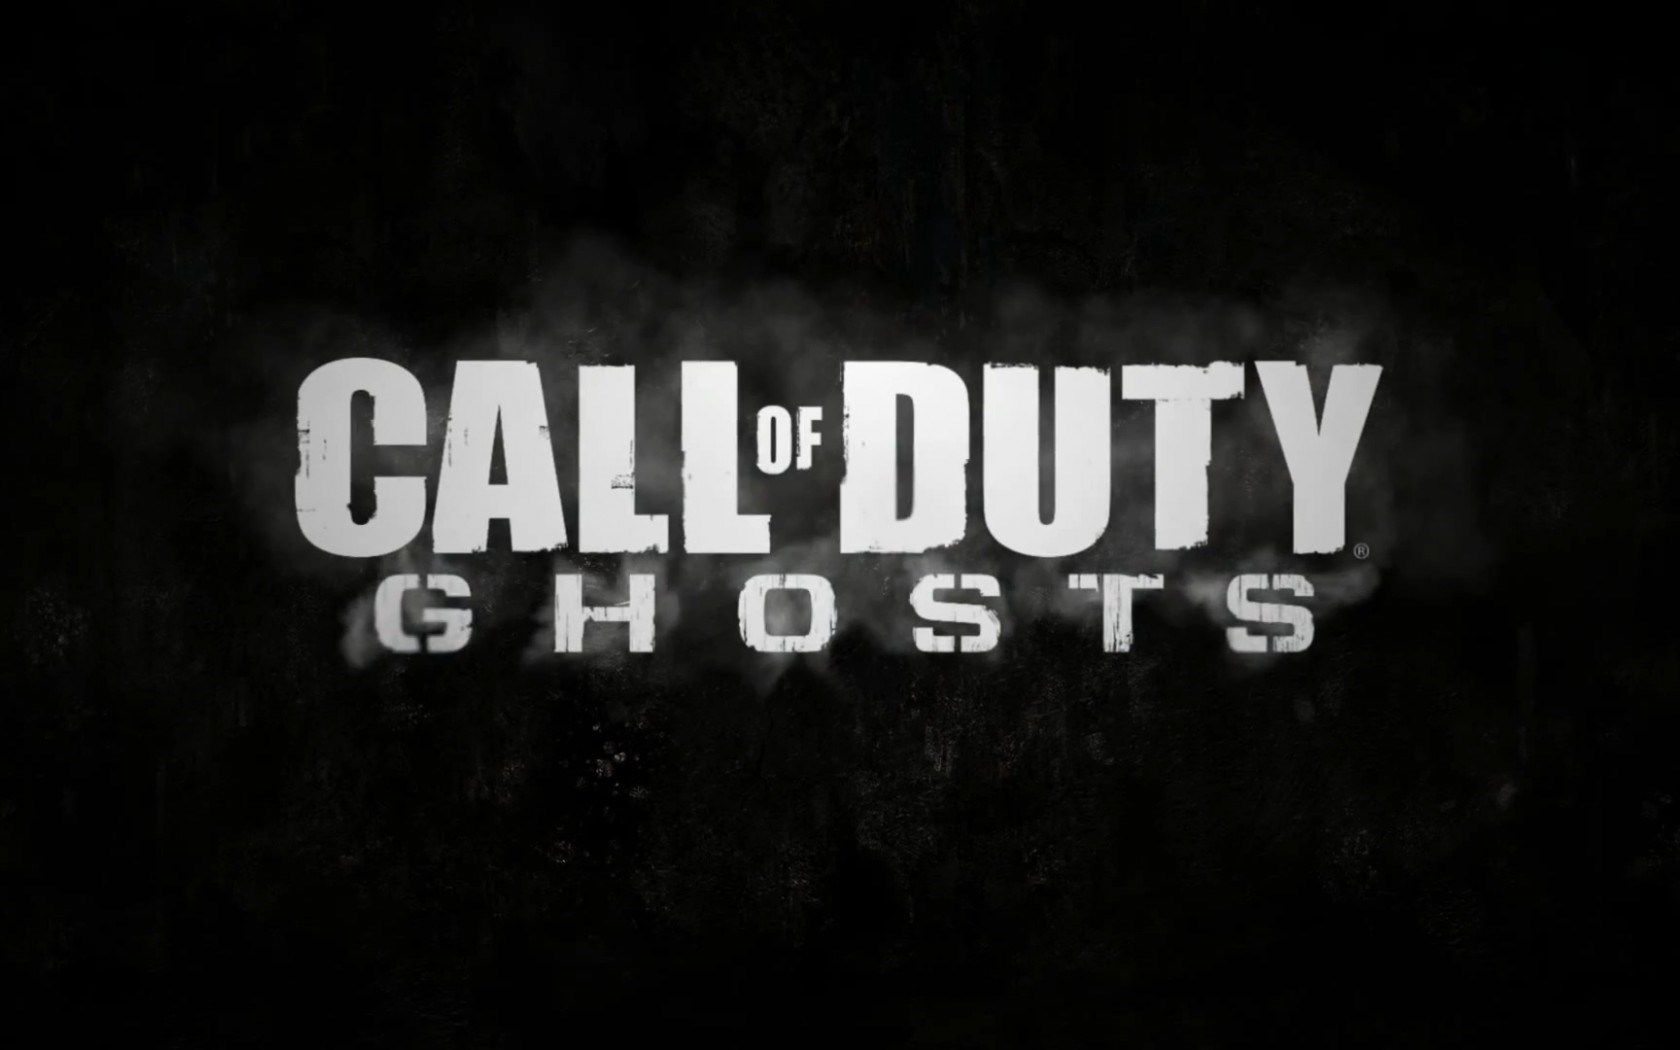 Call Of Duty Ghost Wallpaper Iphone Images Free Download 1680x1050